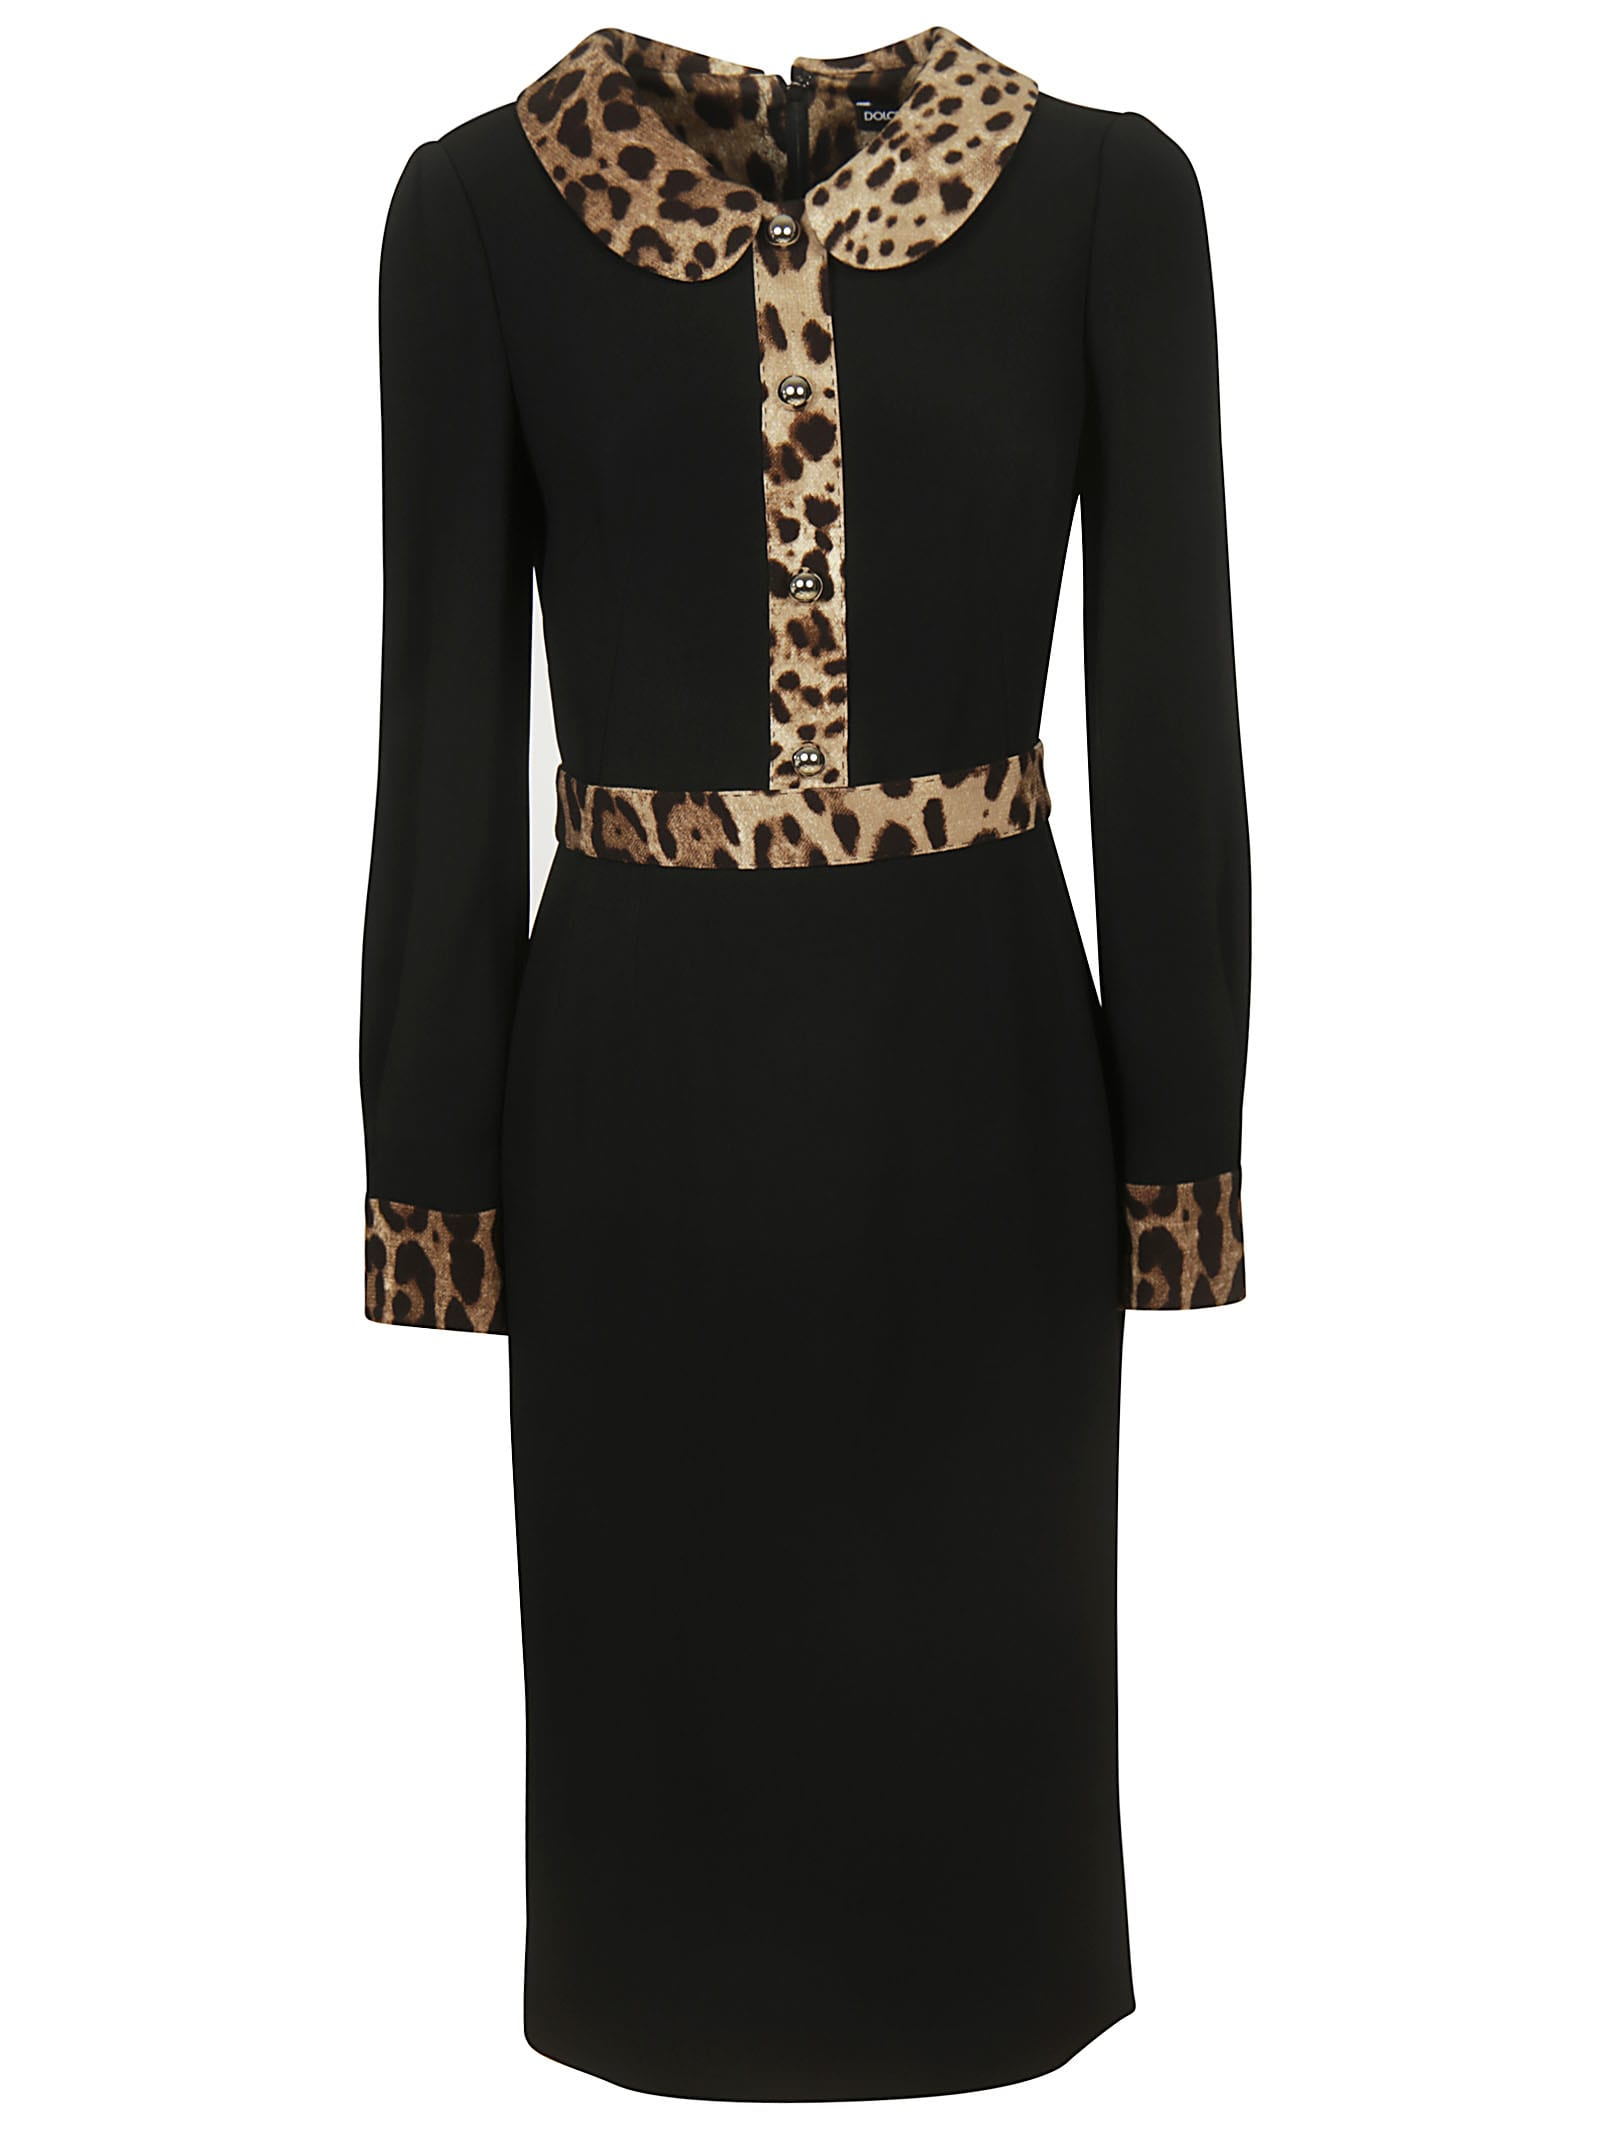 Dolce & Gabbana Leopard Trim Long Dress